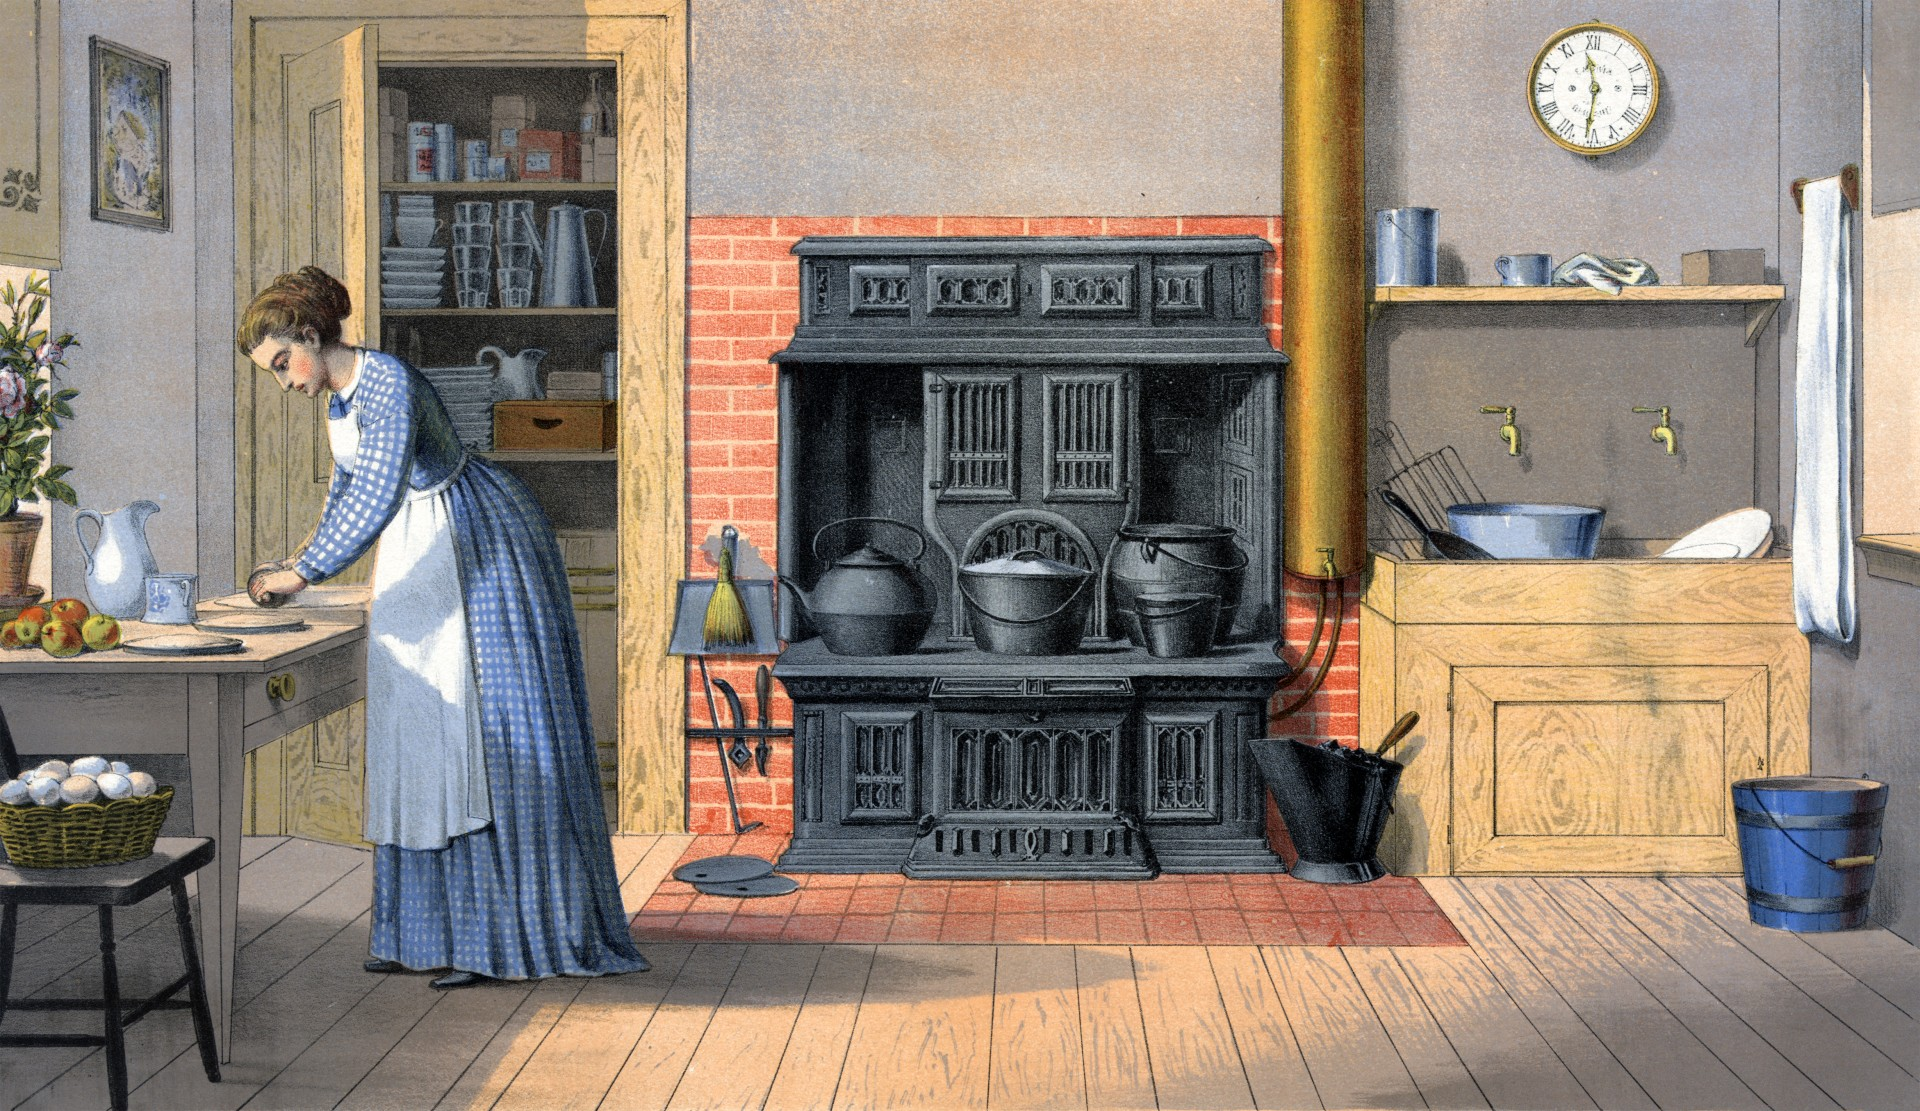 vintage-kitchen-painting-scene.jpg